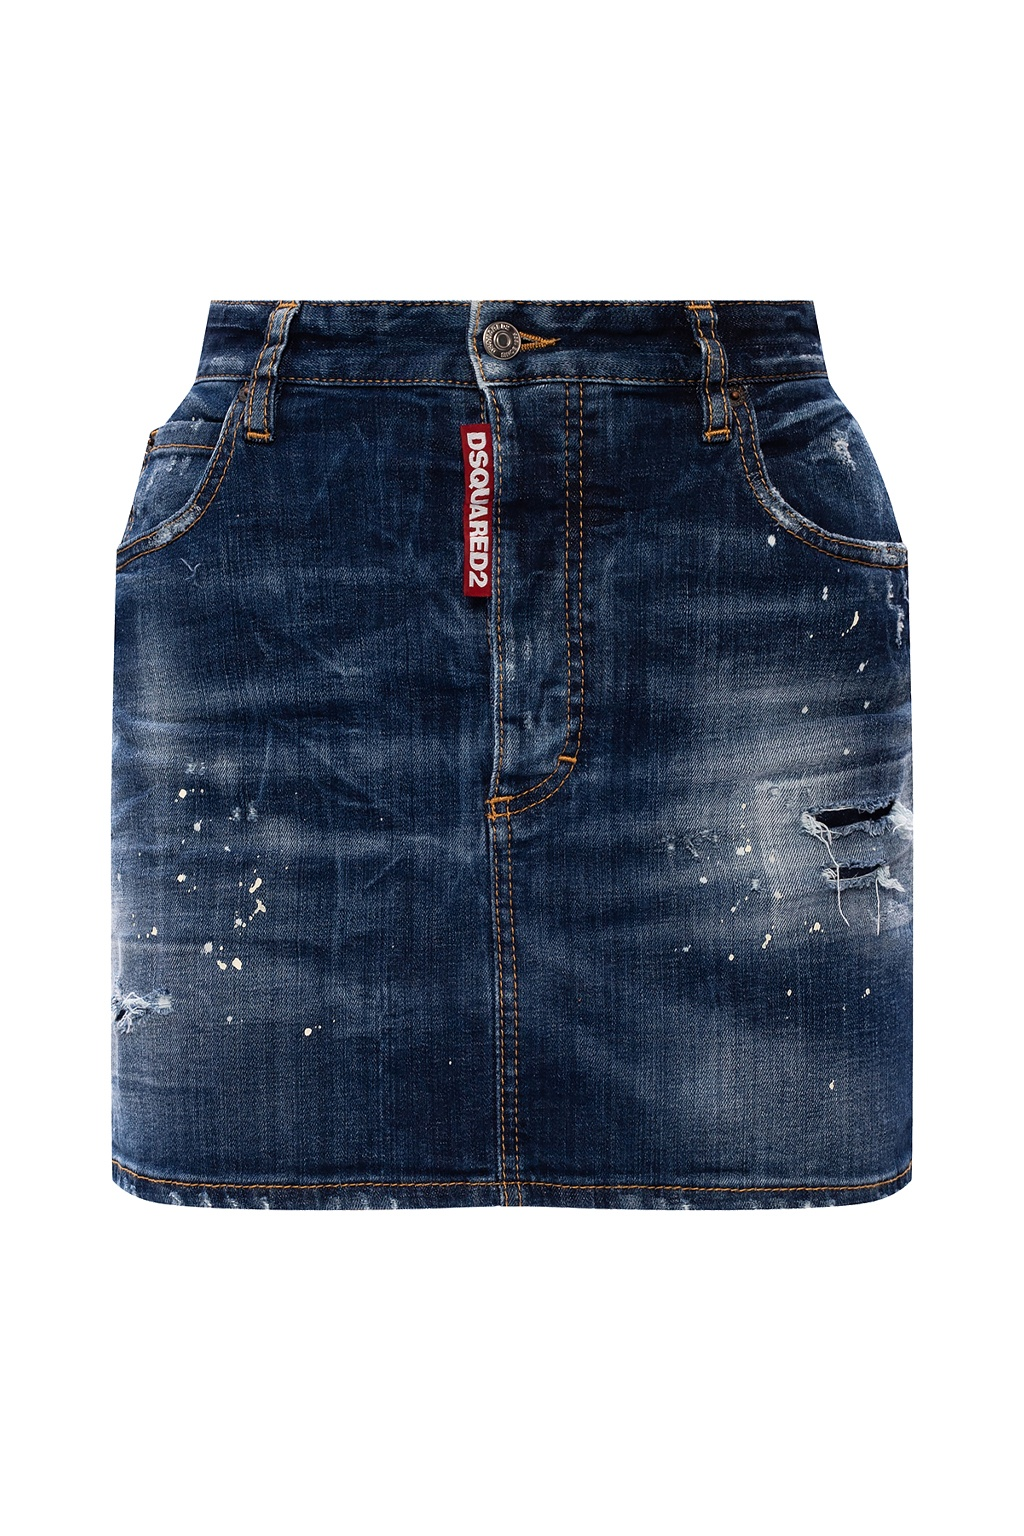 Dsquared2 Denim skirt with raw edge